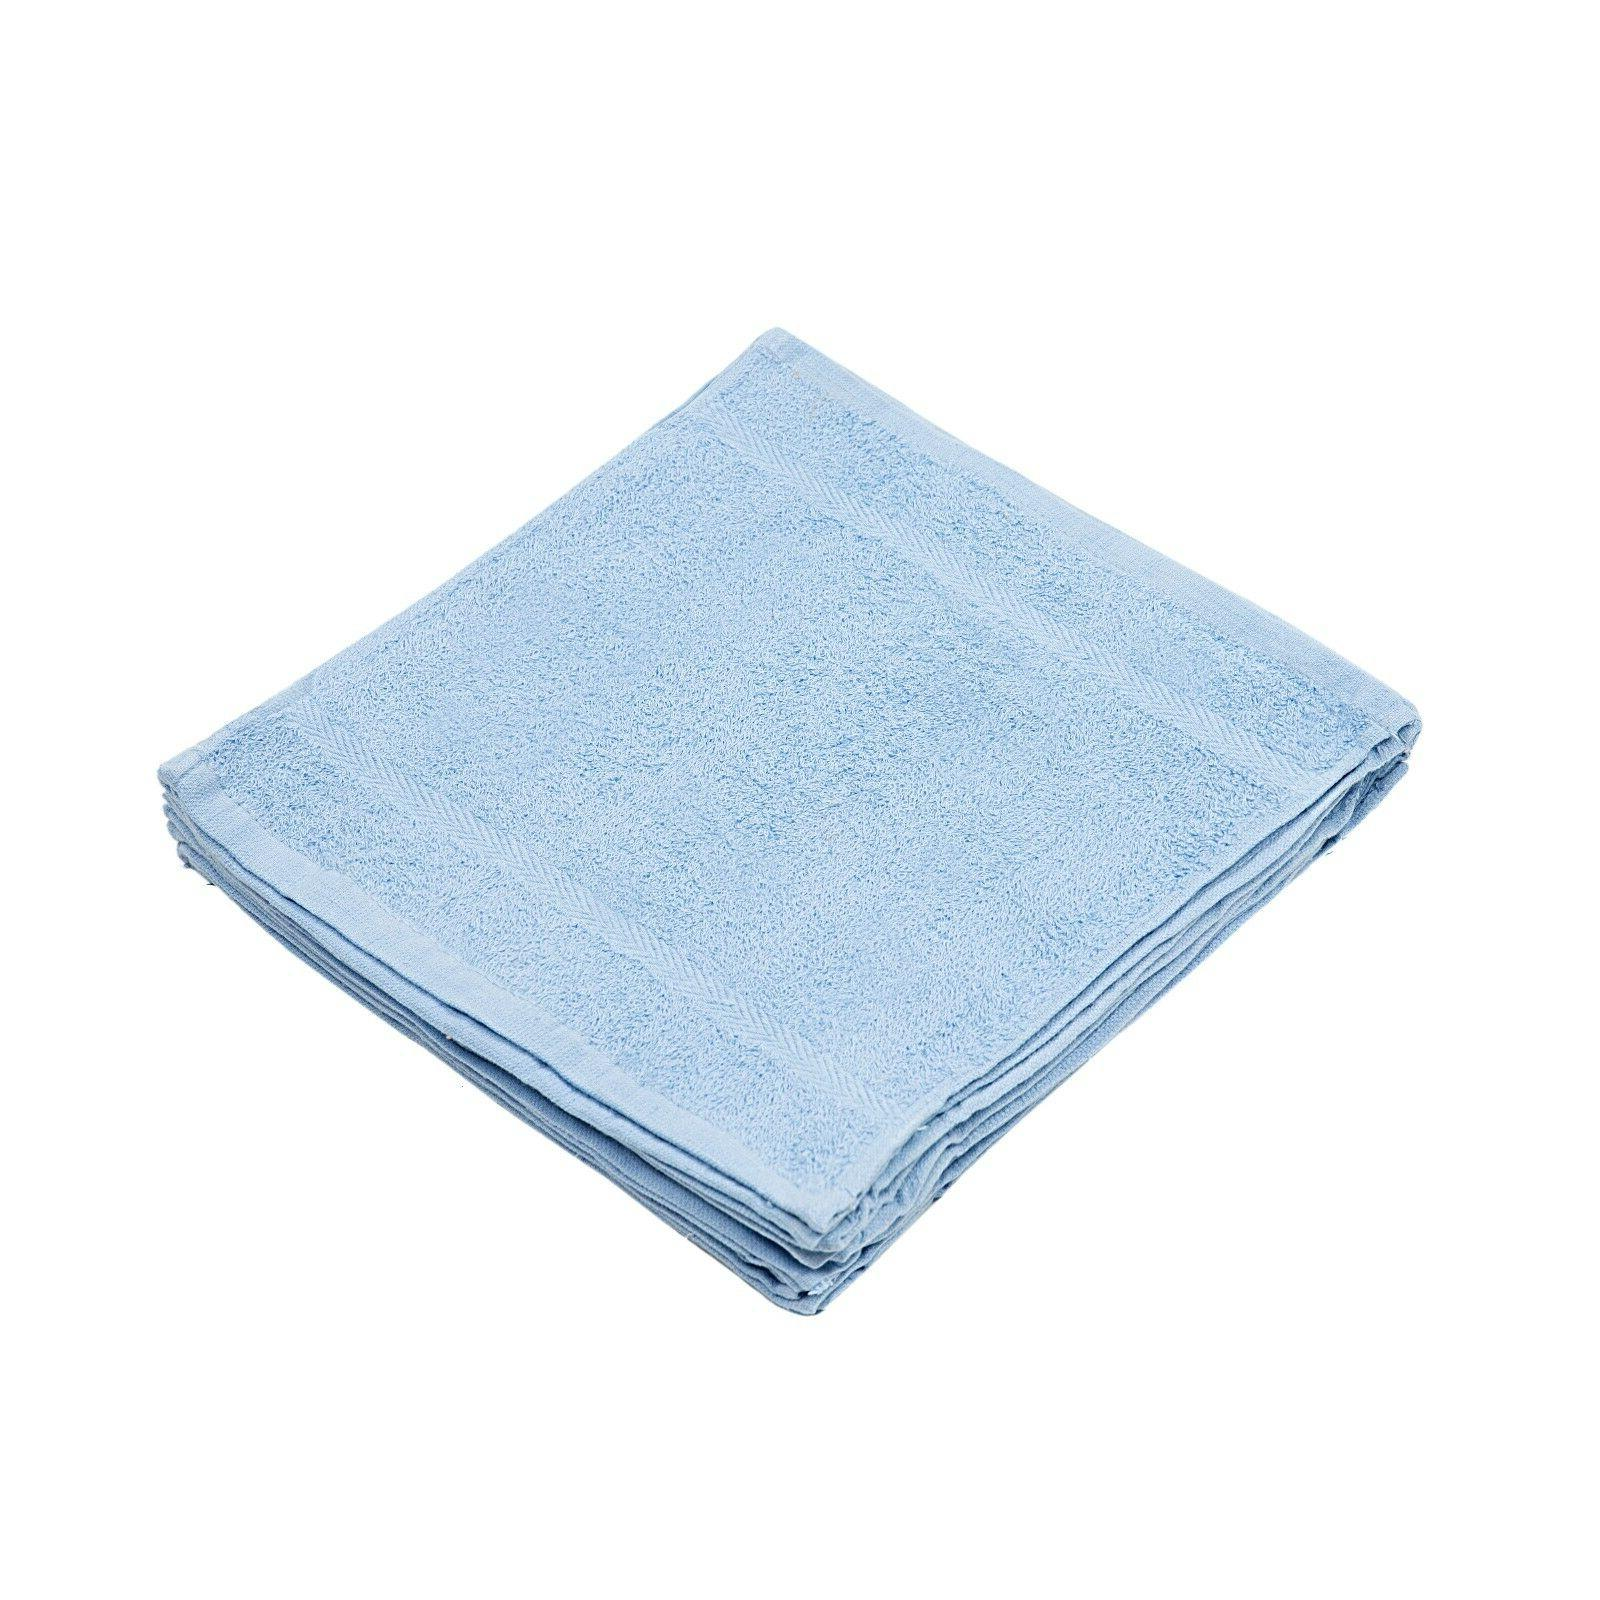 12 pack soft washcloths face towels 12x12